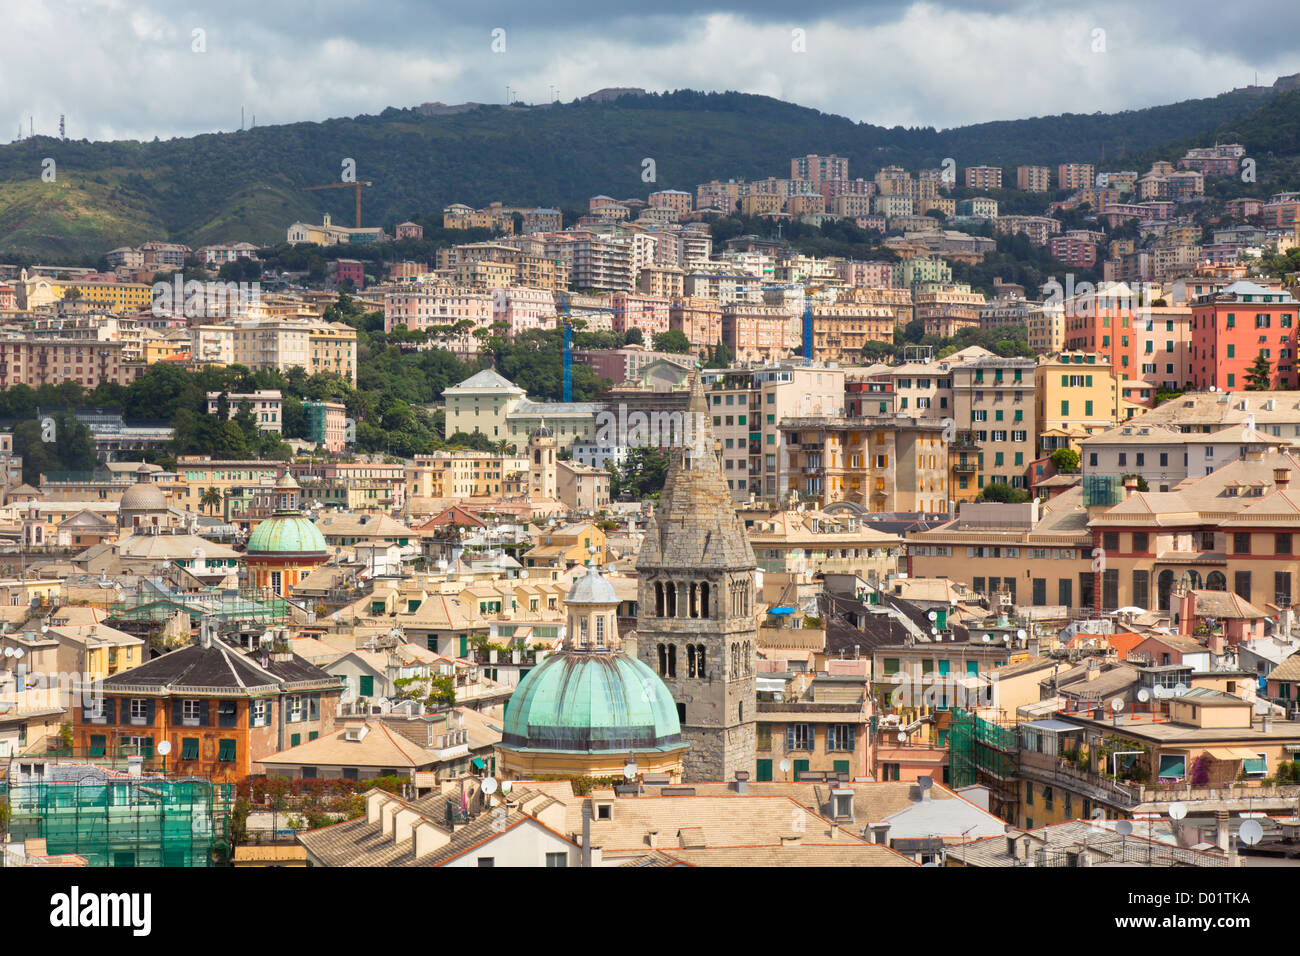 Roofs of the buildings in the city center of Genoa, Italy - Stock Image